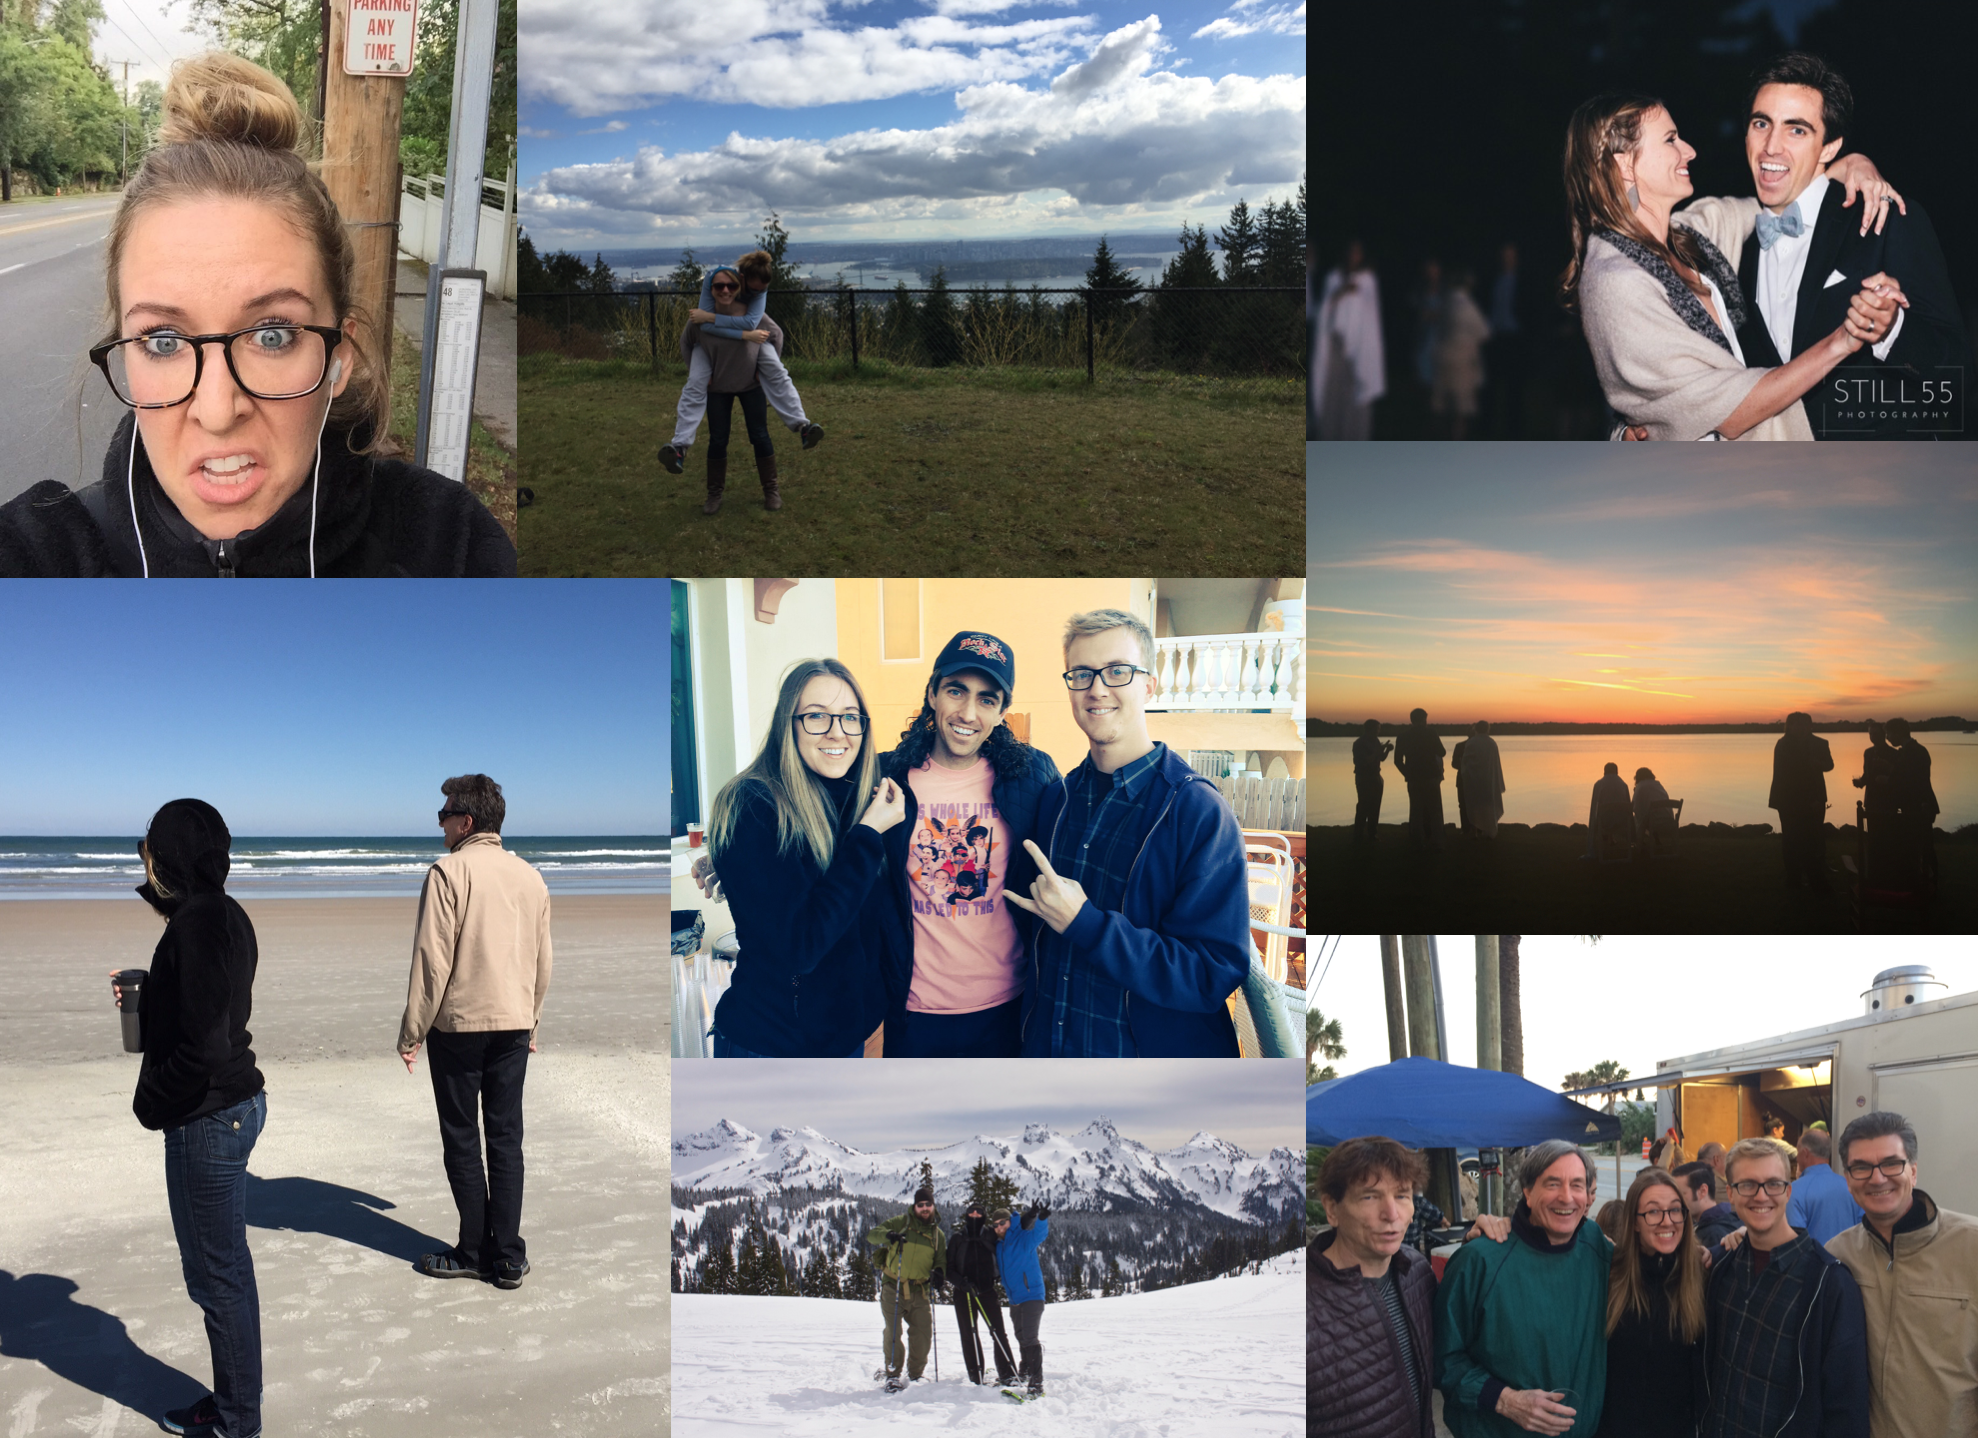 February: Enjoyed taking the bus again on a regular basis; visited cousin Morgan and Dave in Van; cousin Chris and Laura had a big fat Greek wedding in Daytona; Justin, Aaron and I snowshoed Paradise.